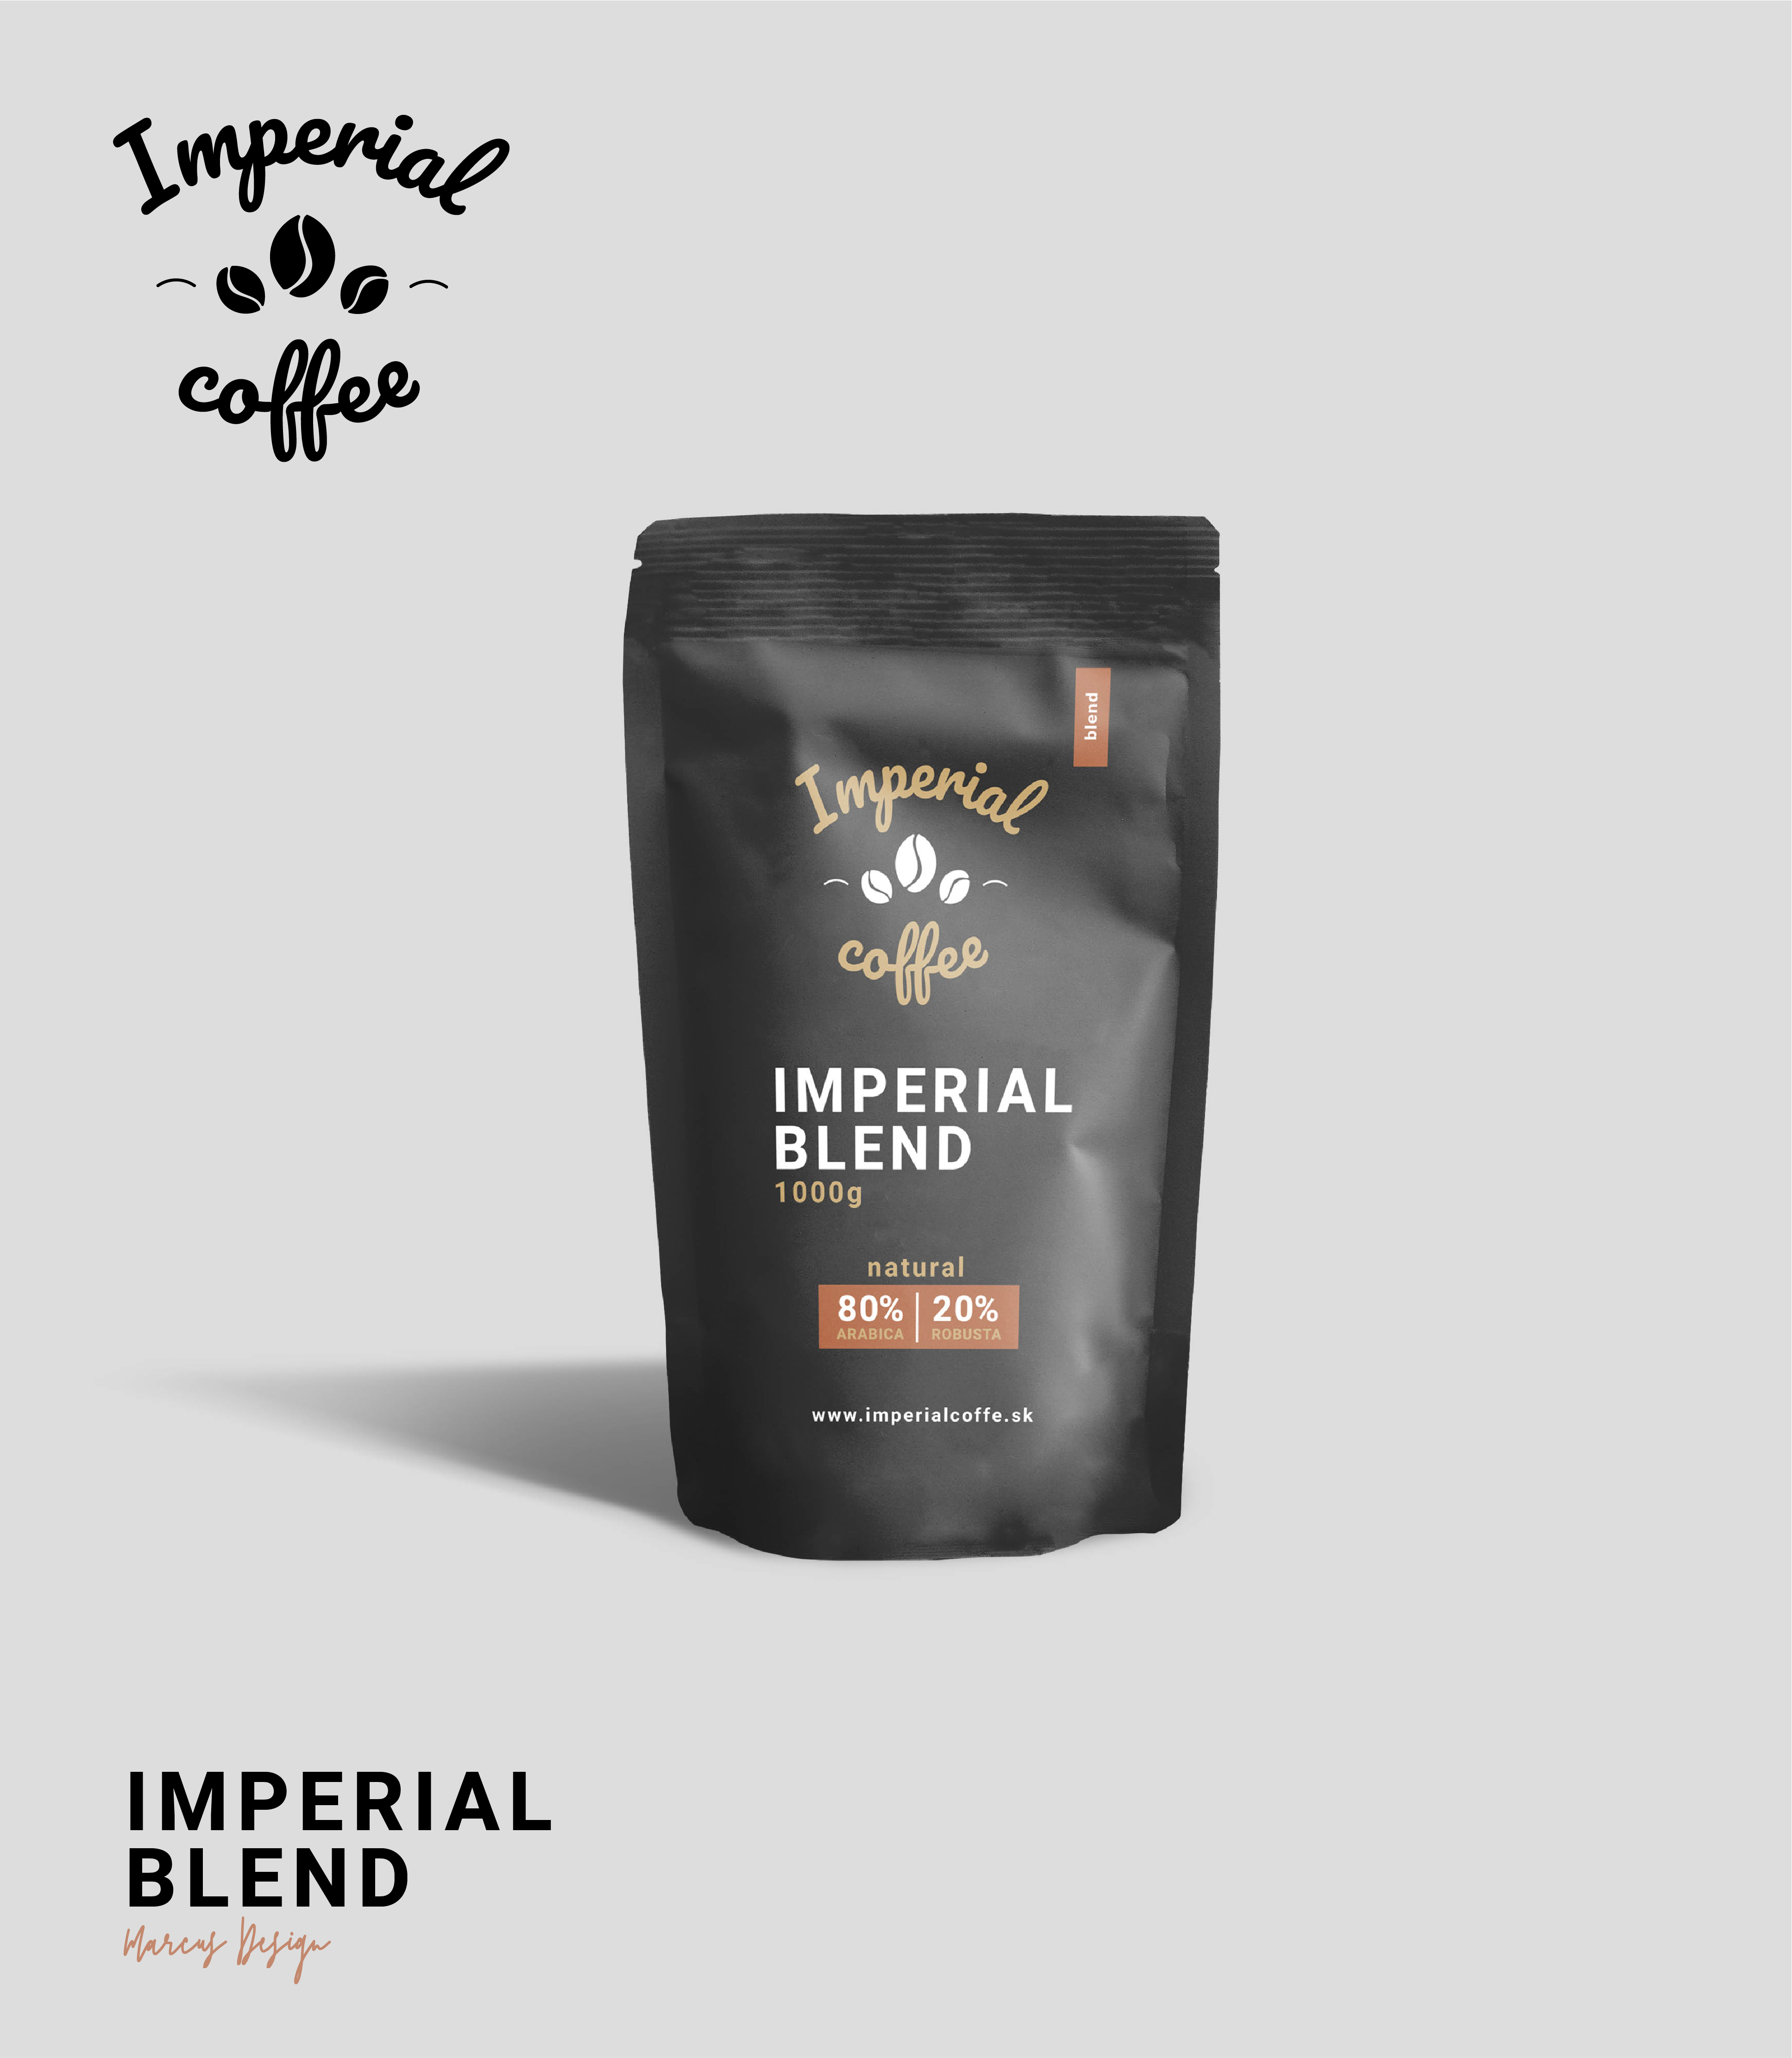 IMPERIAL BLEND